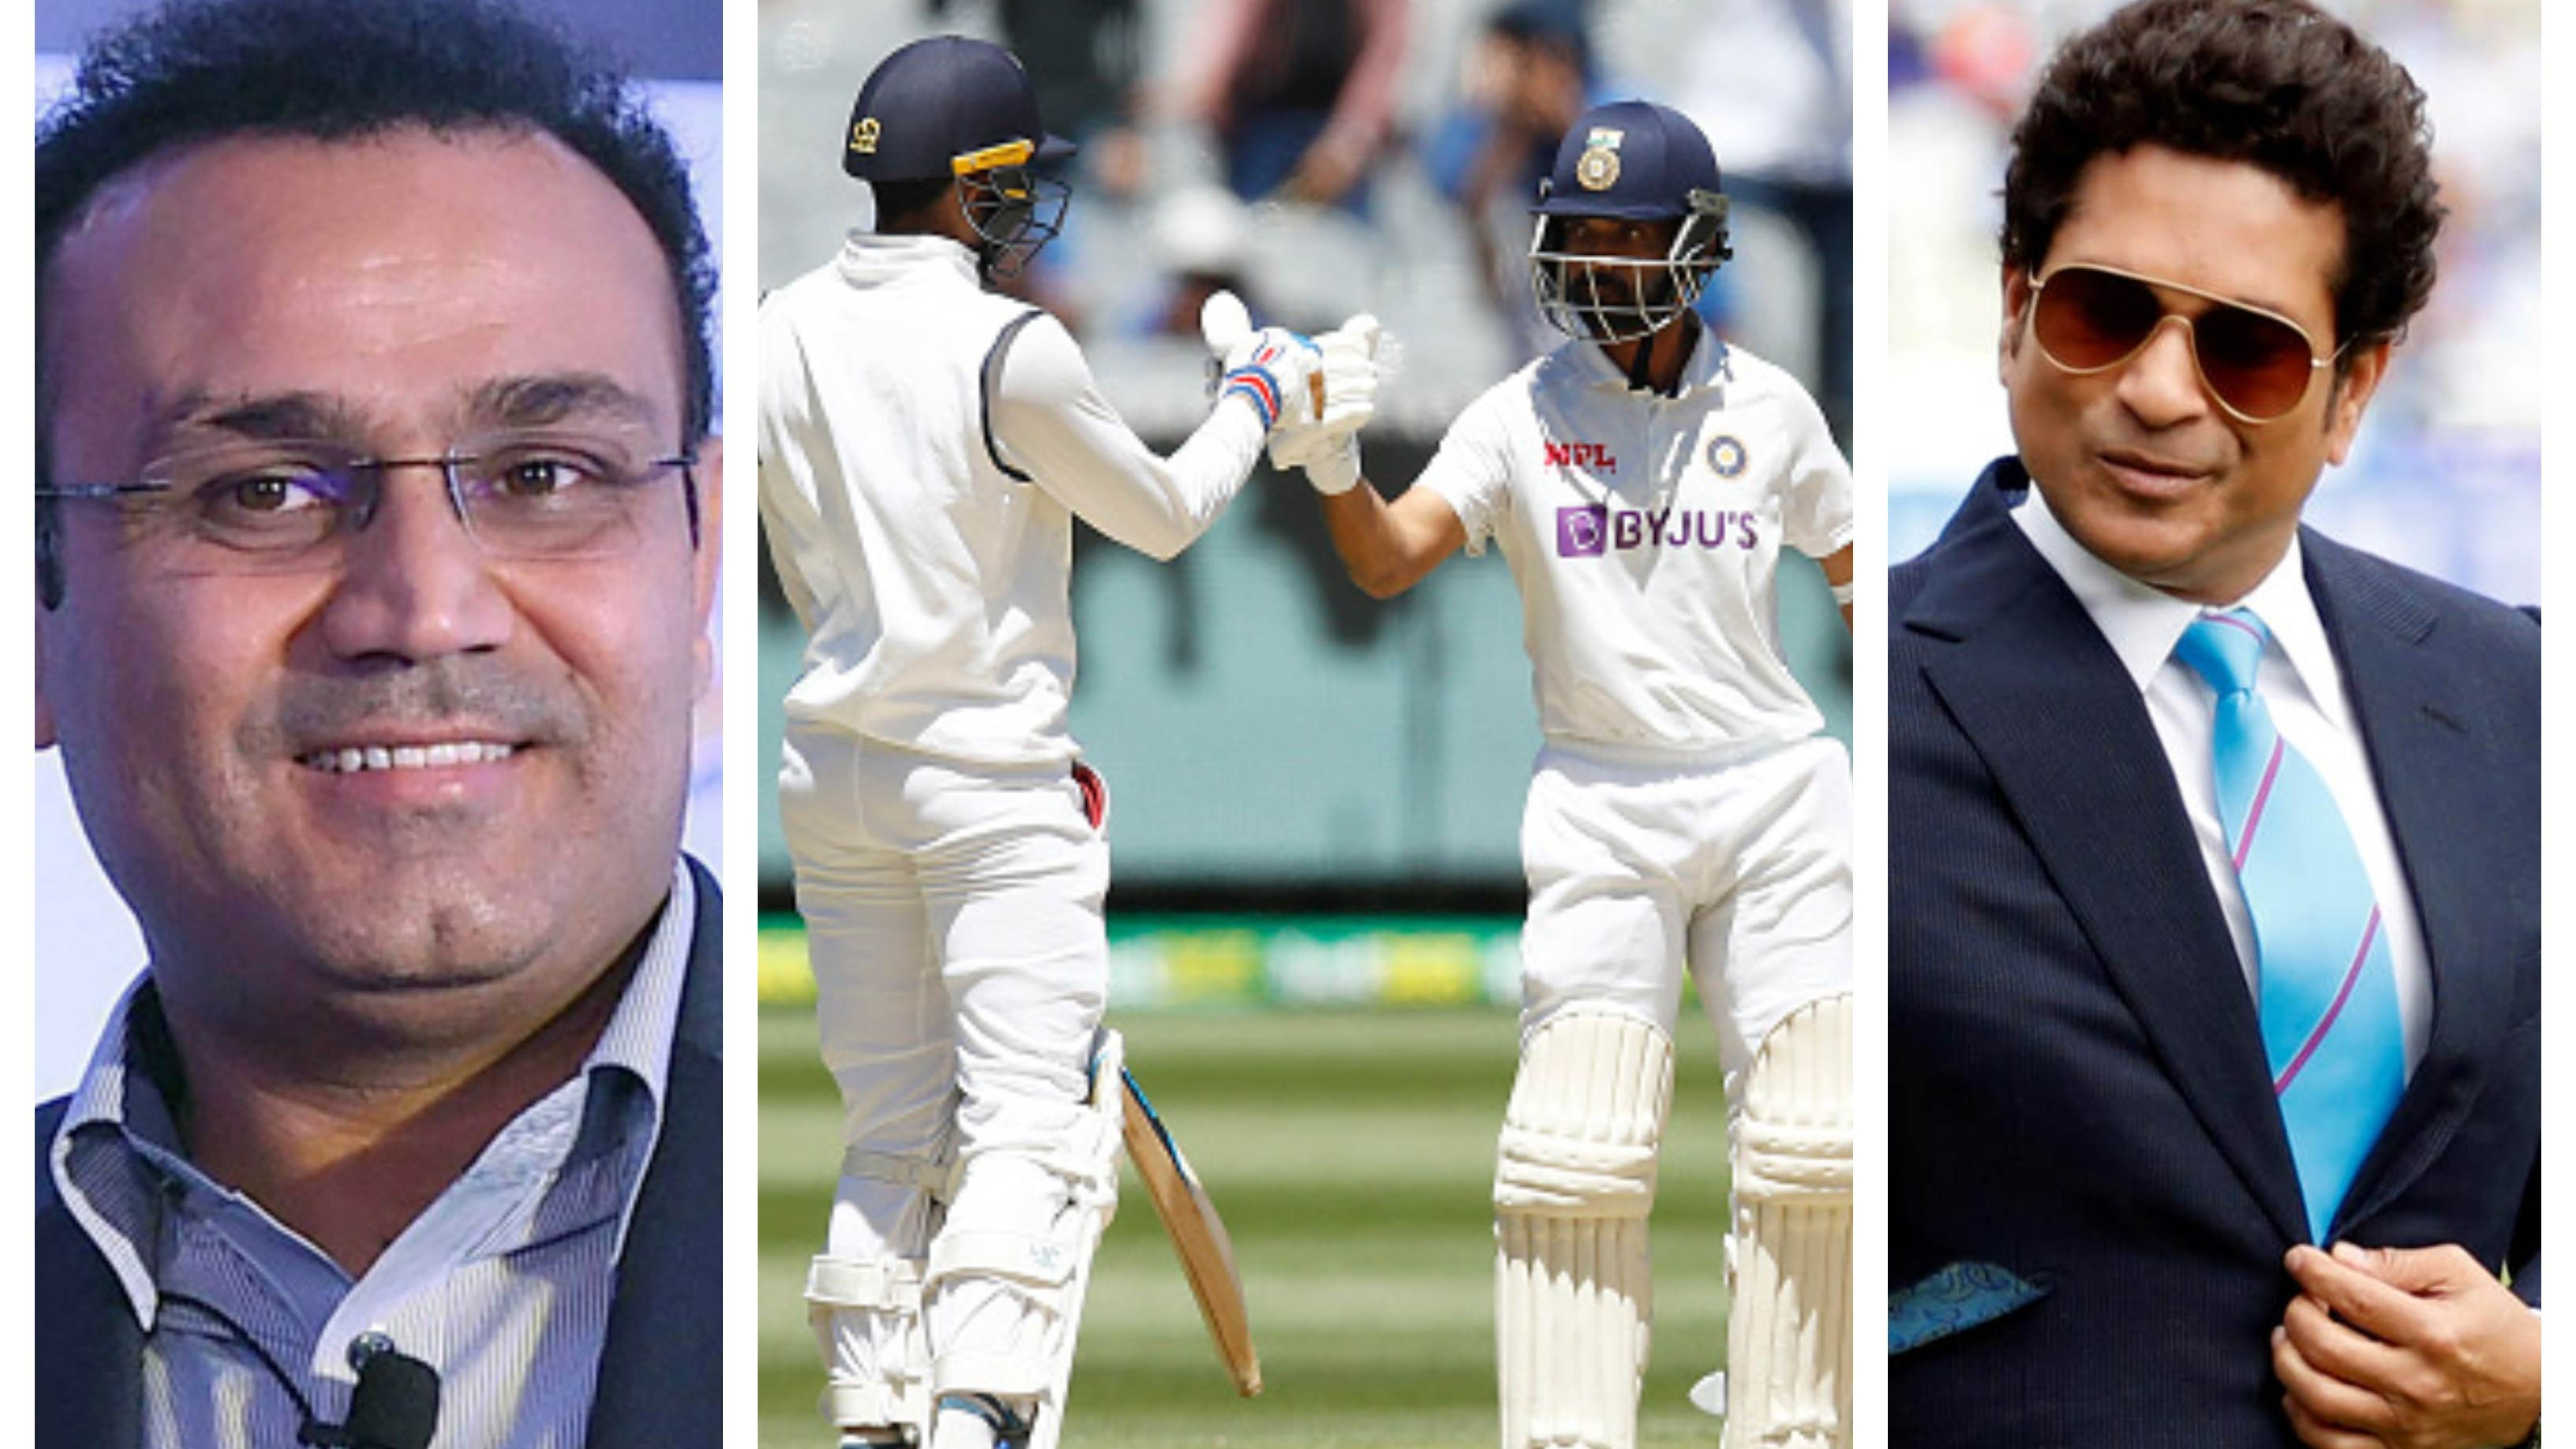 AUS v IND 2020-21: Cricket fraternity reacts as Team India register an emphatic victory in 2nd Test after Adelaide debacle